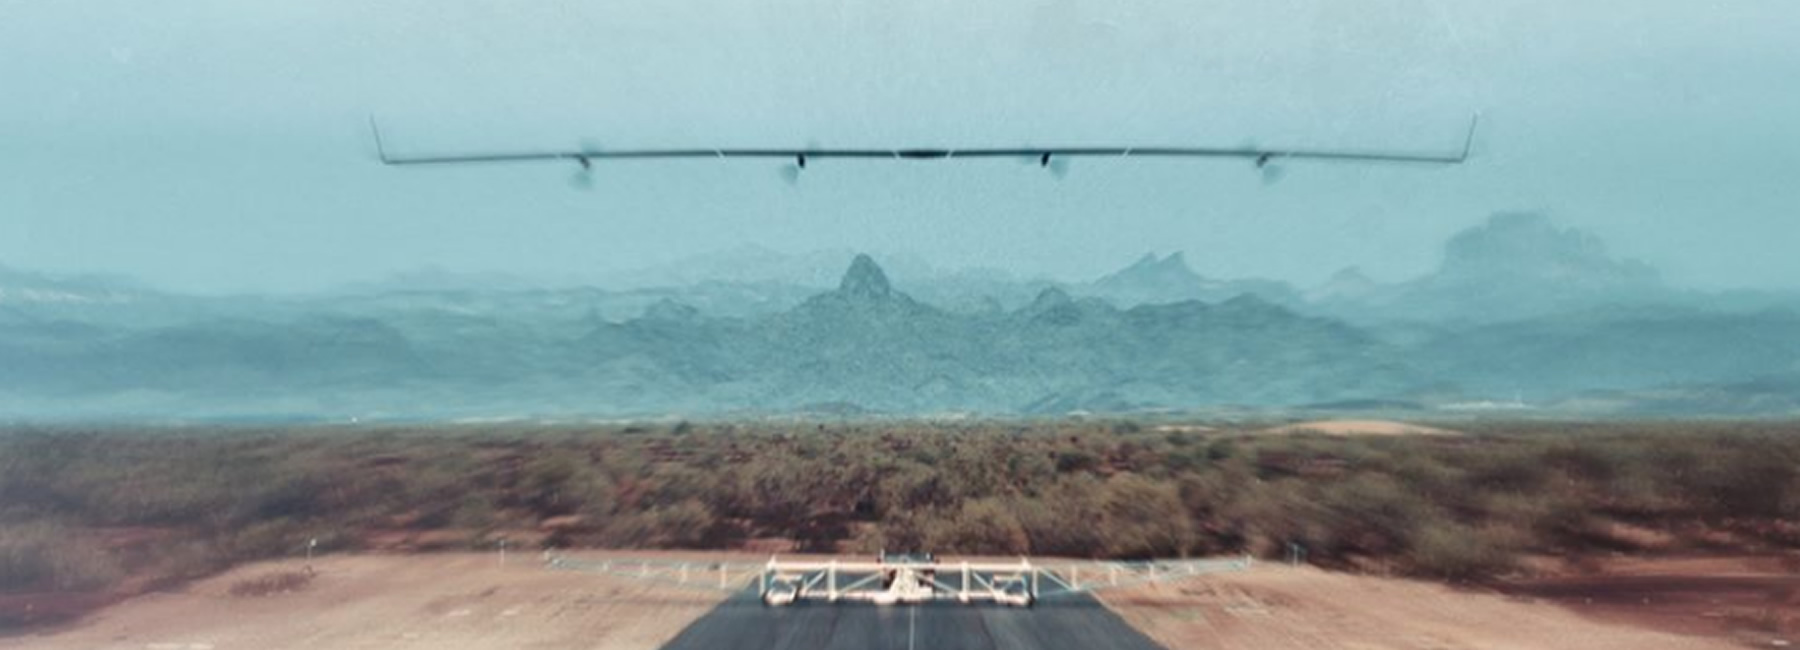 Aquila, Facebook's solar-powered plane that will beam internet to remote parts of the world